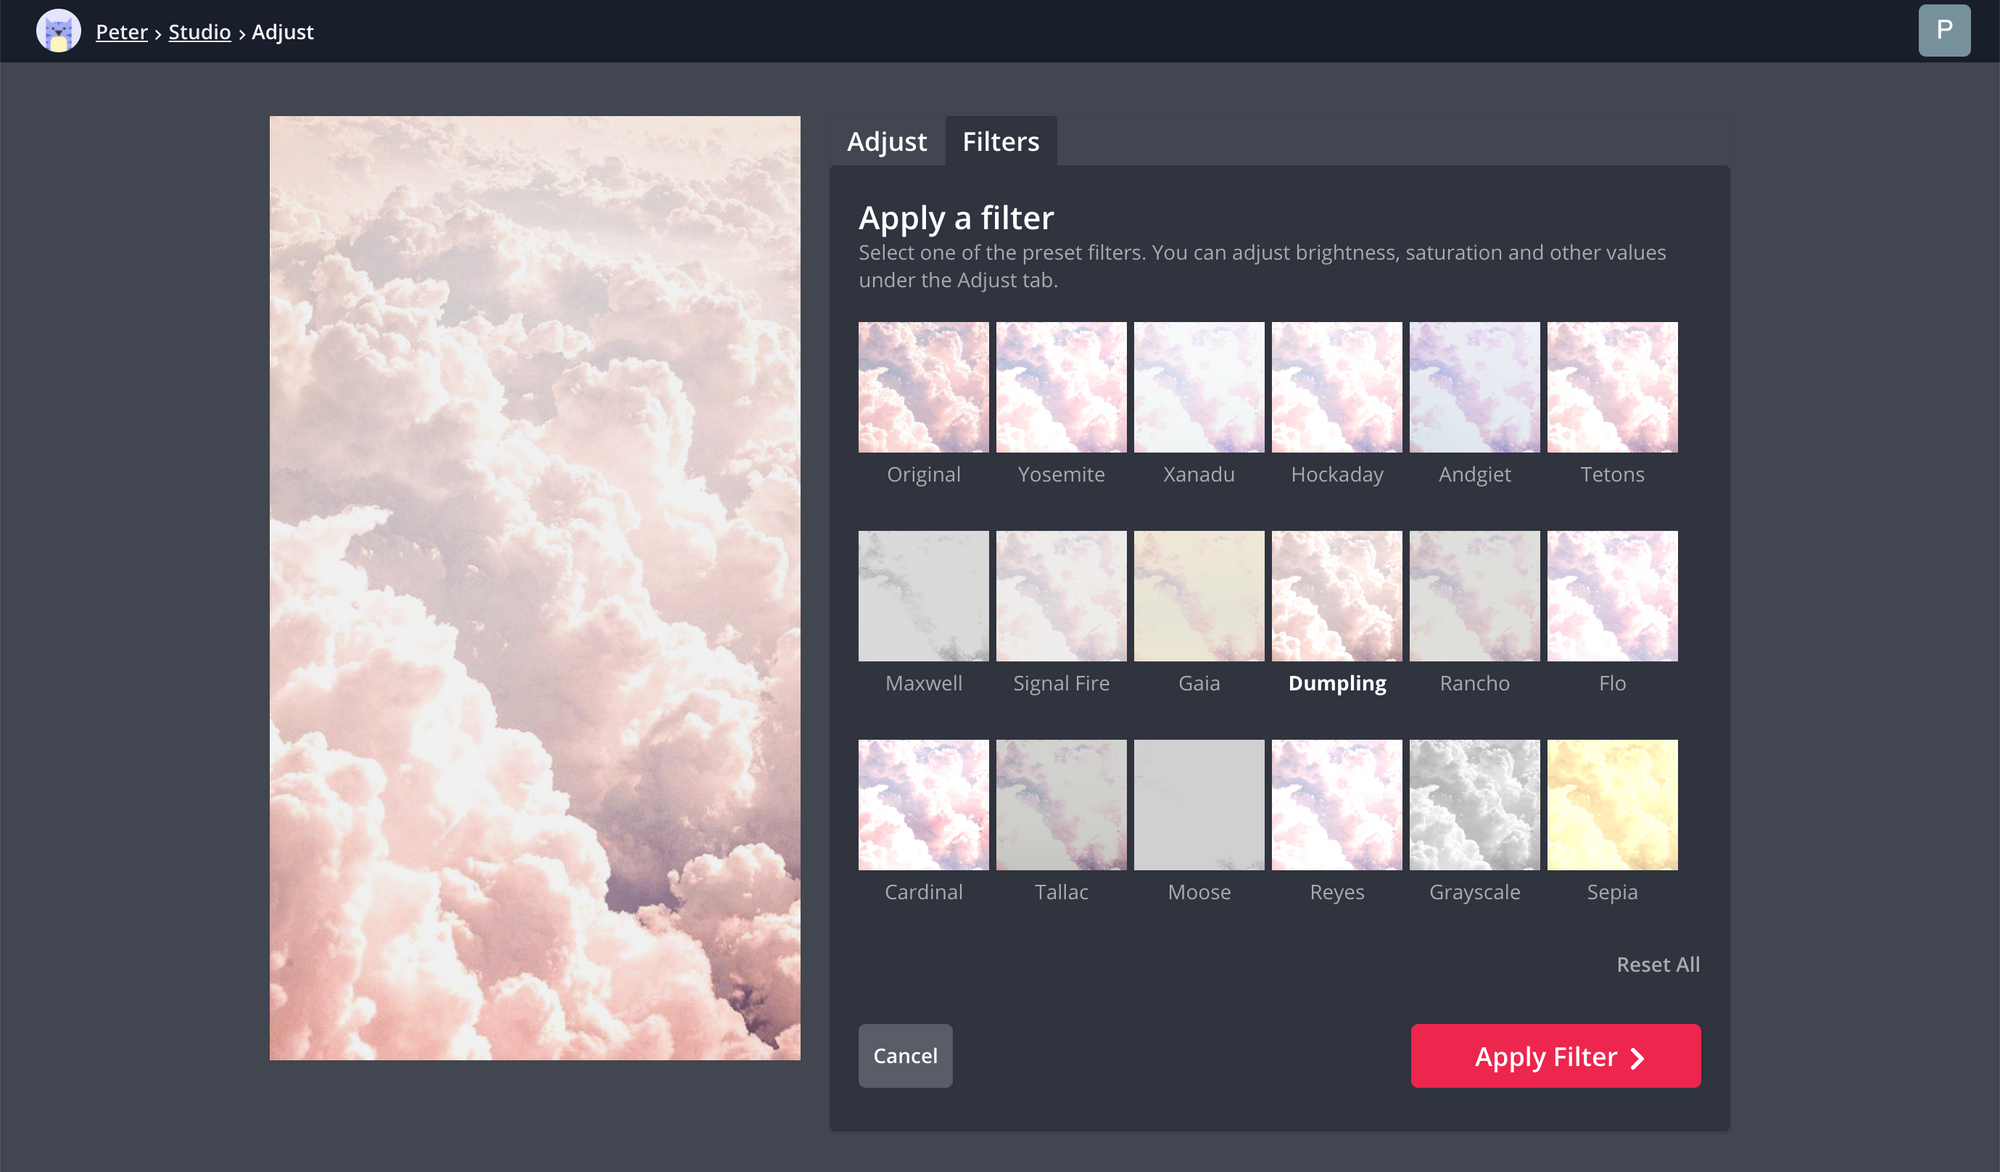 A screenshot of the Kapwing Studio's filter options.